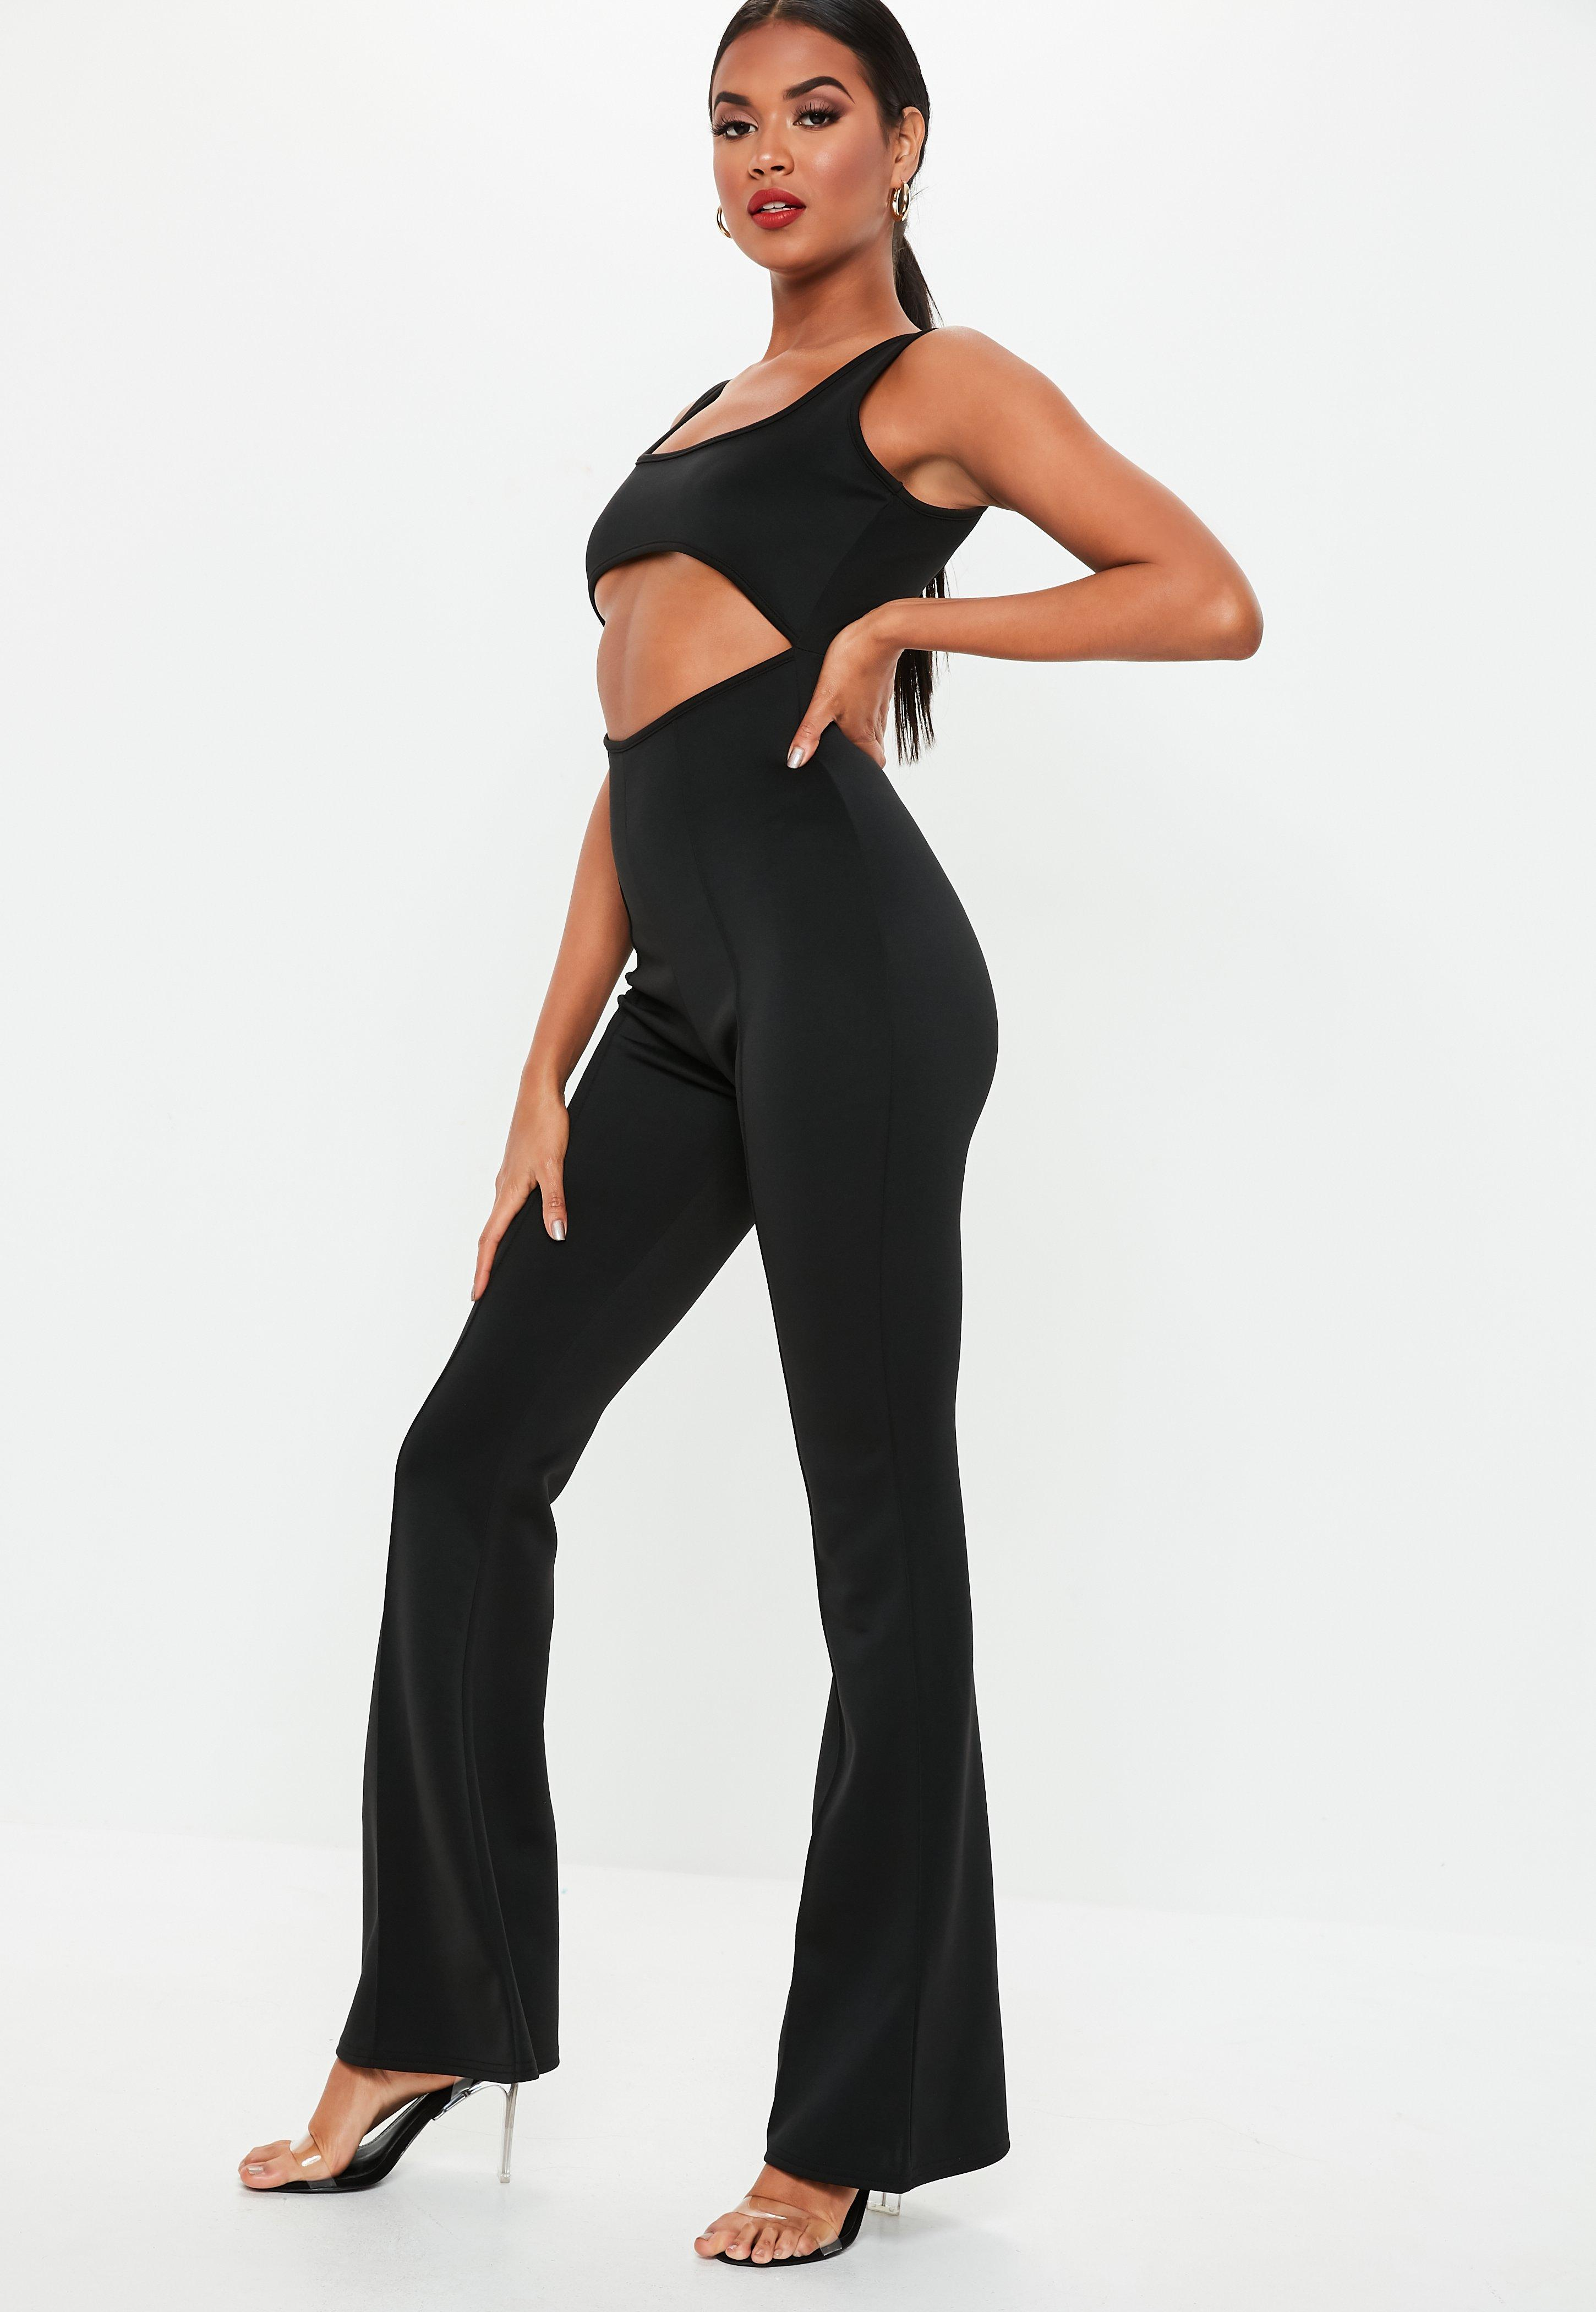 09bd52e60529 Missguided - Black Cut Out Square Neck Flared Jumpsuit - Lyst. View  fullscreen